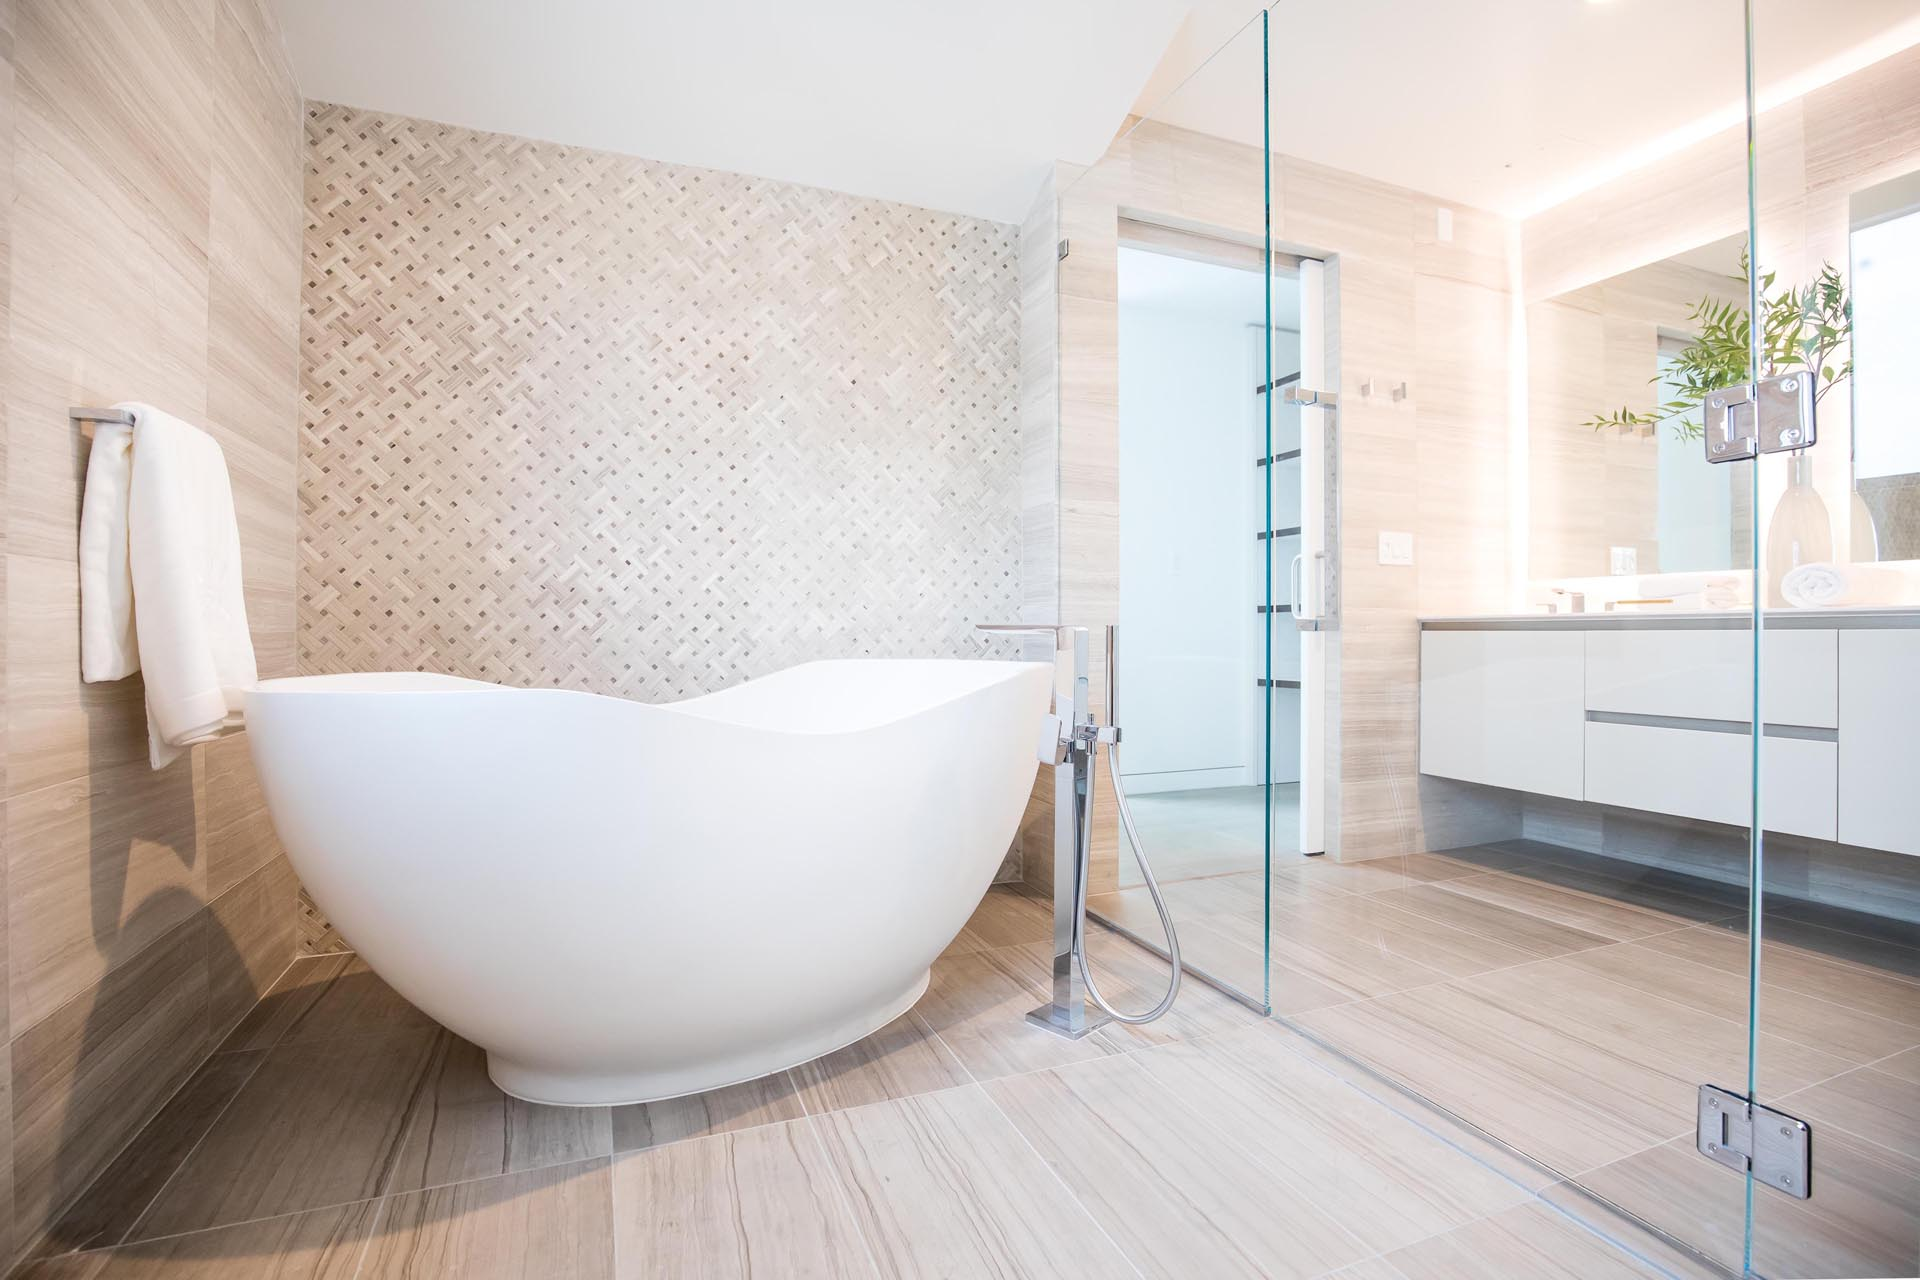 A modern bathroom with a neutral color palette and freestanding bathtub.